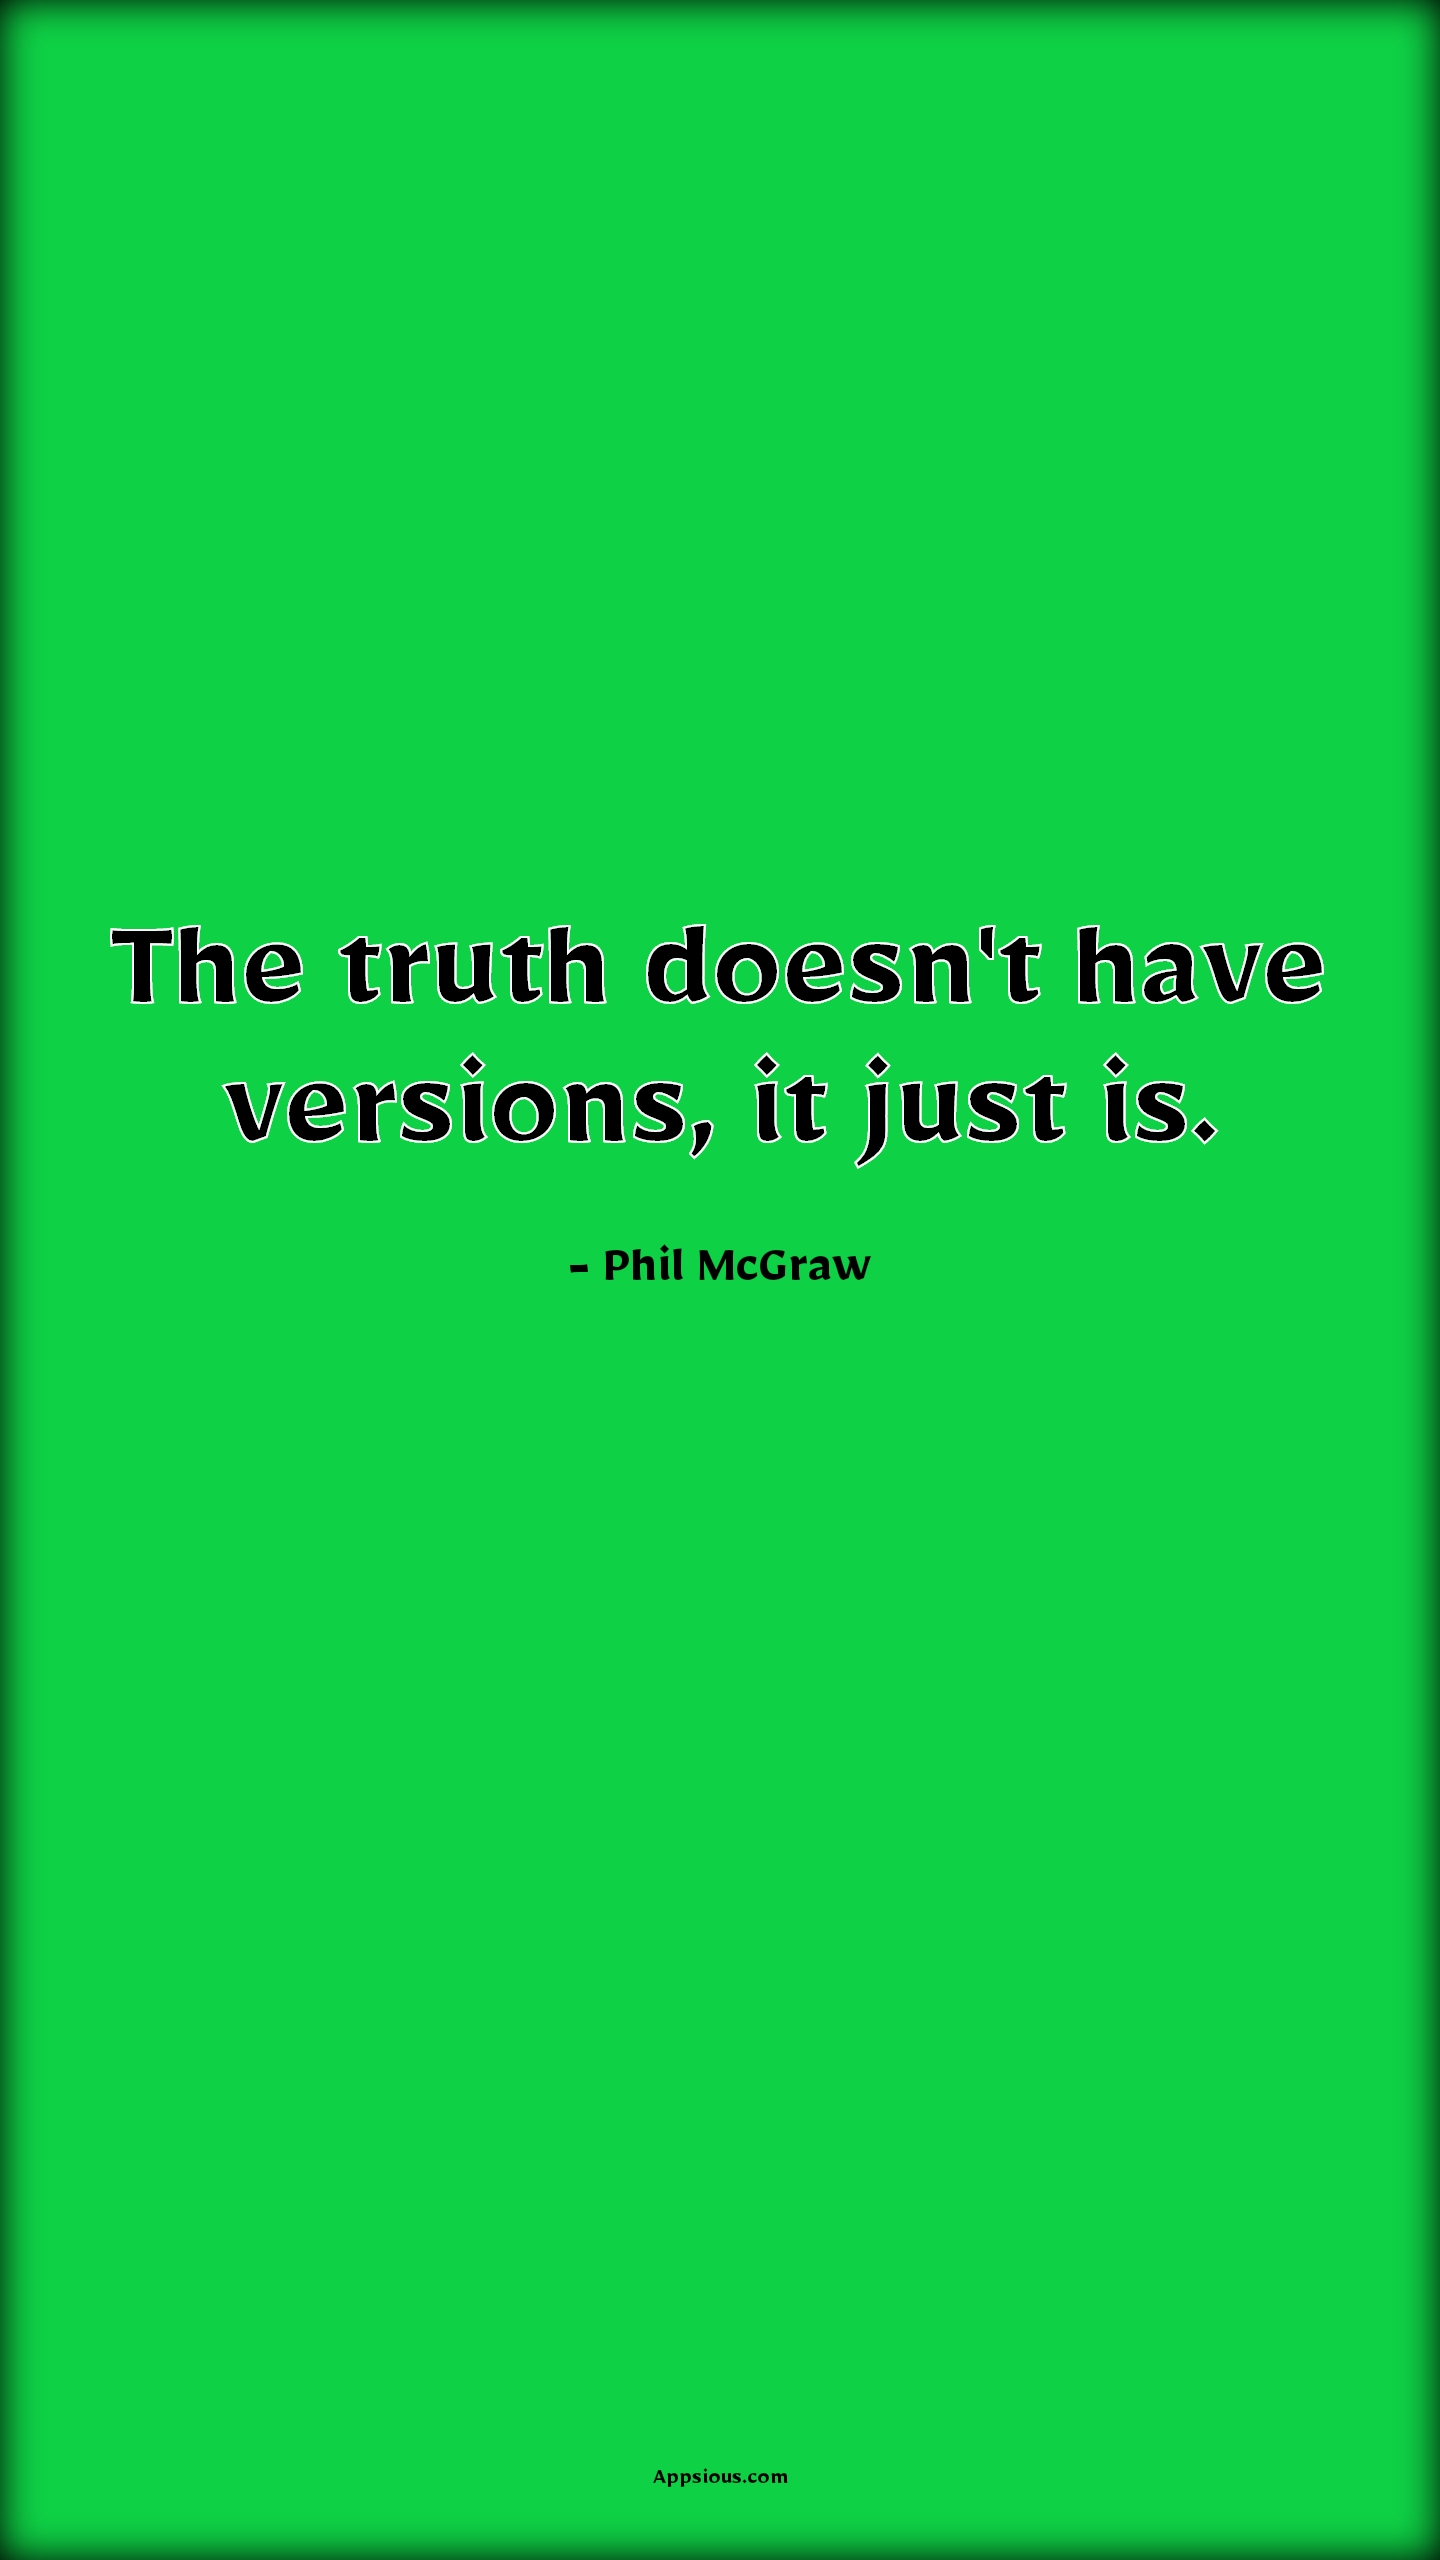 The truth doesn't have versions, it just is.